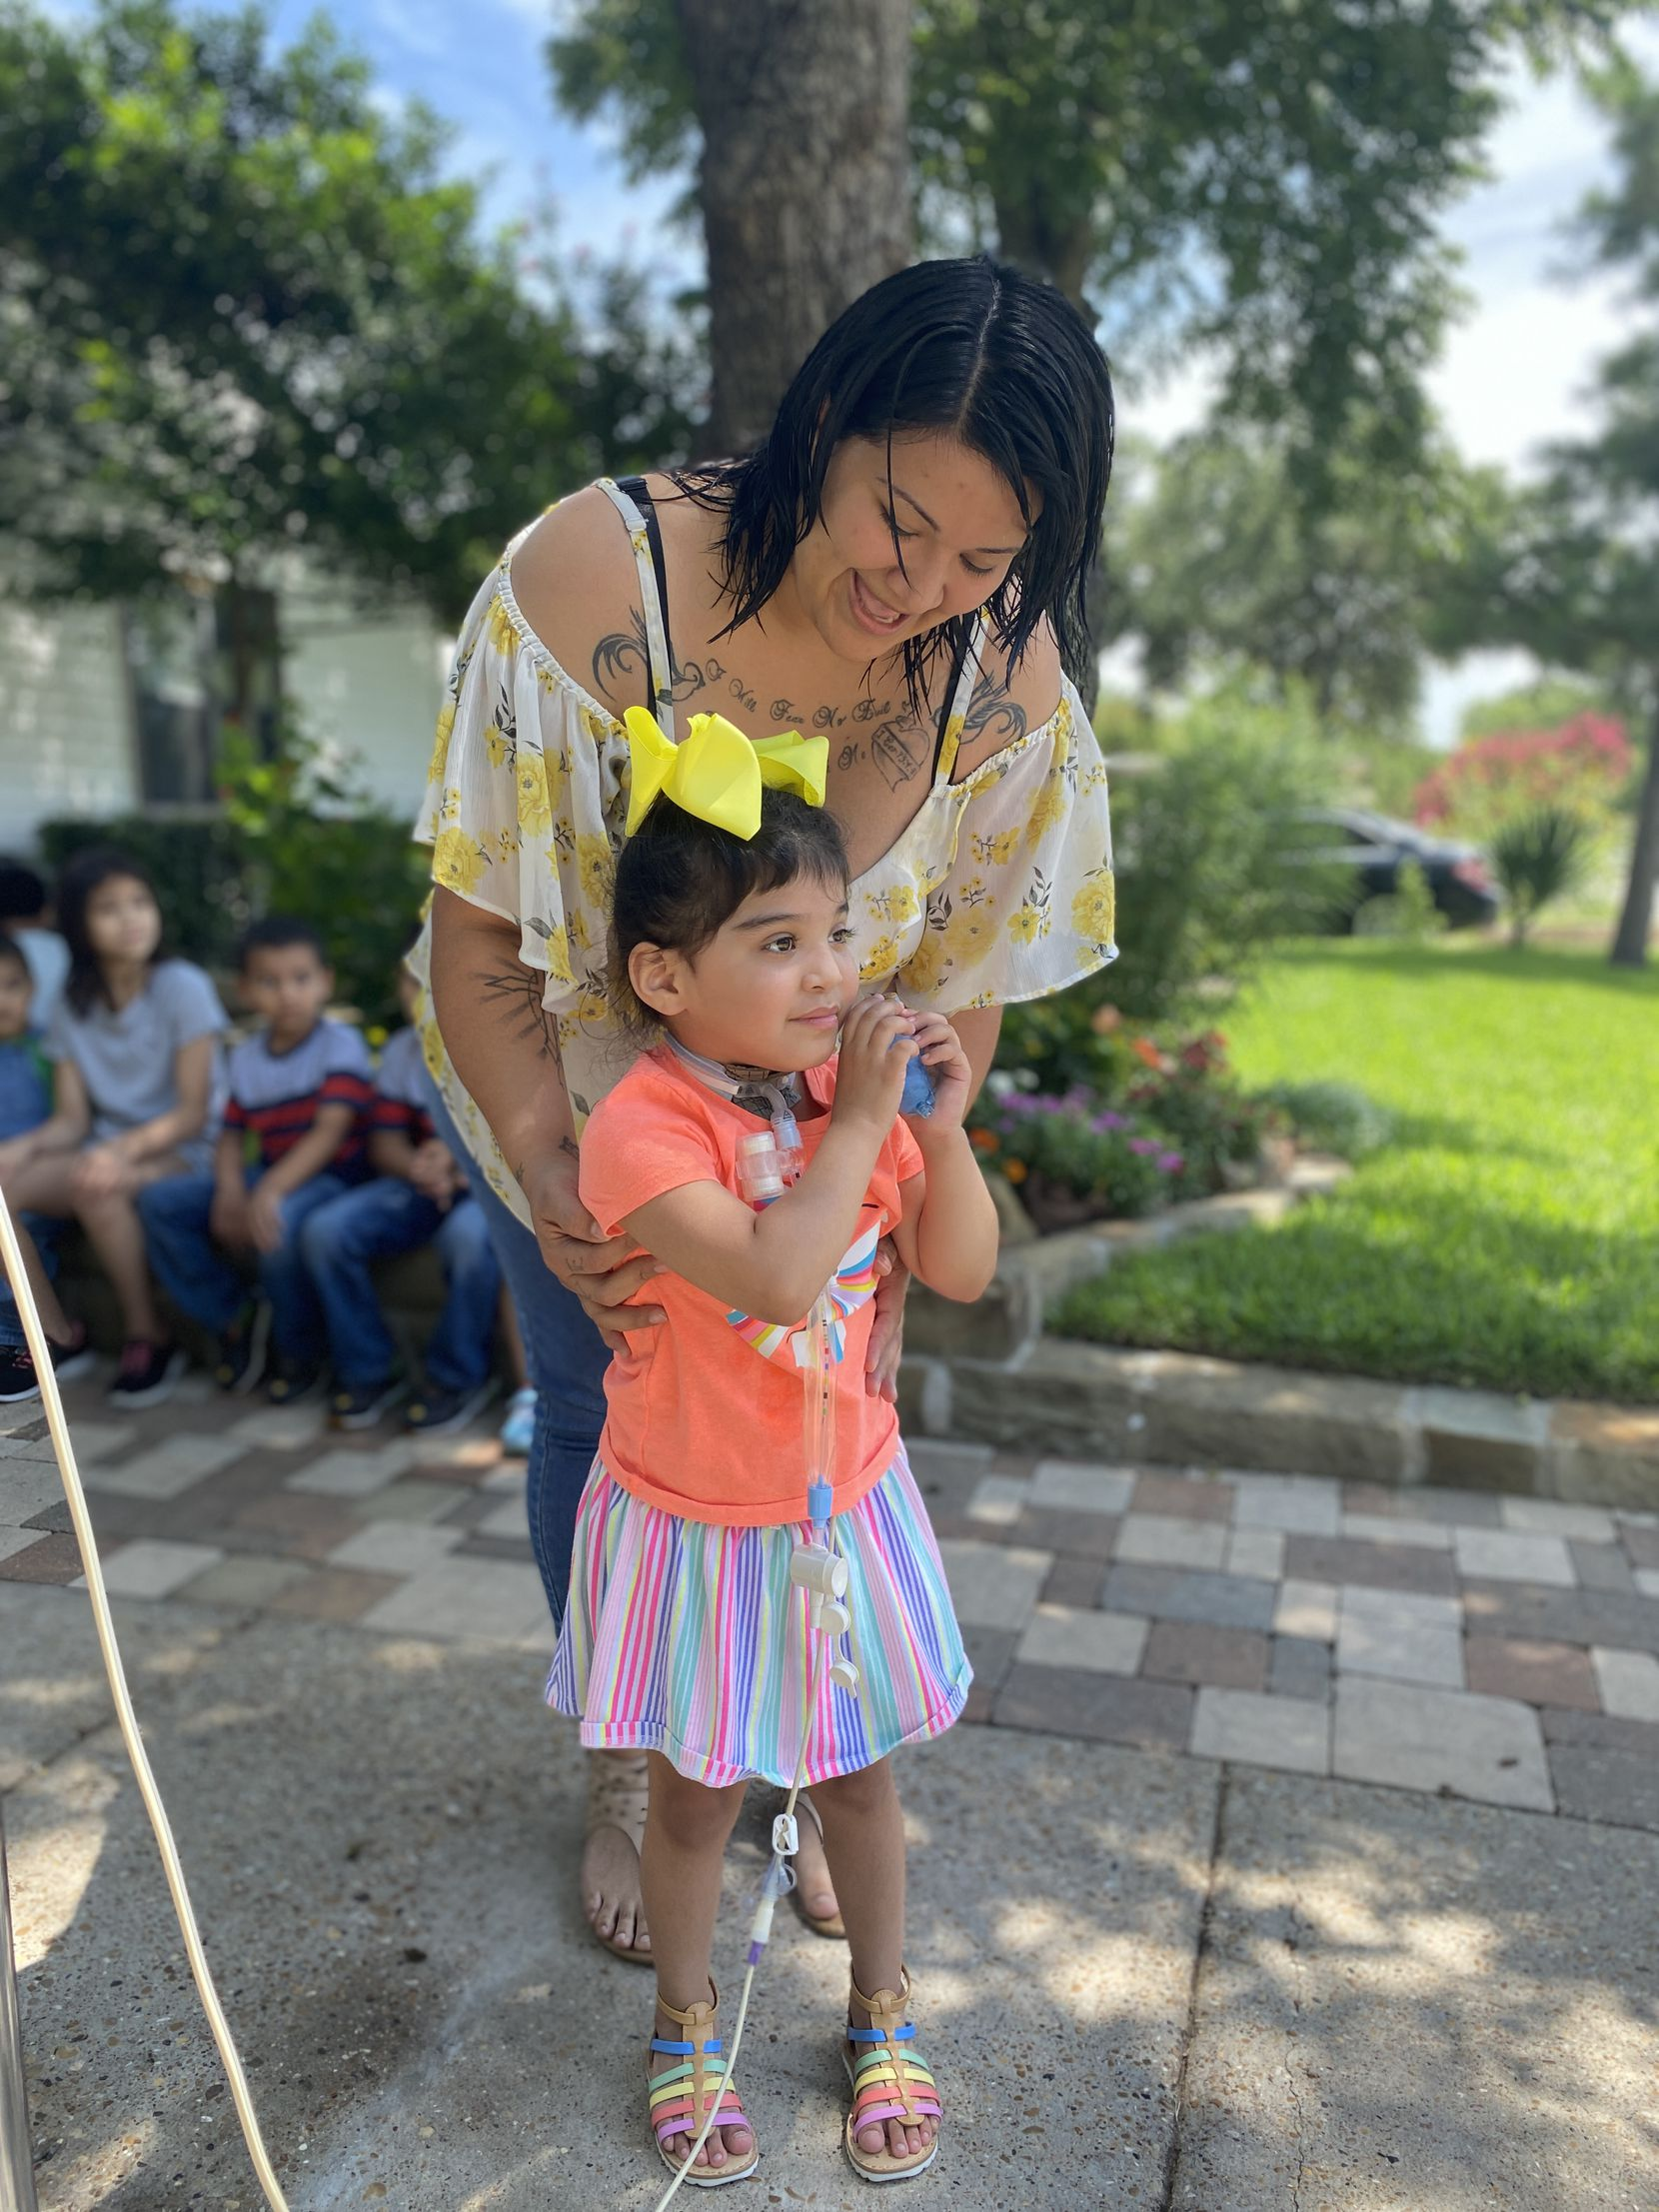 Sarai Tirado stands with her mother, Andrea, at her home in Irving on Tuesday, July 7, 2020. Sarai, 4, recently returned home from the hospital where she was recovering after unsecured furniture fell on her.